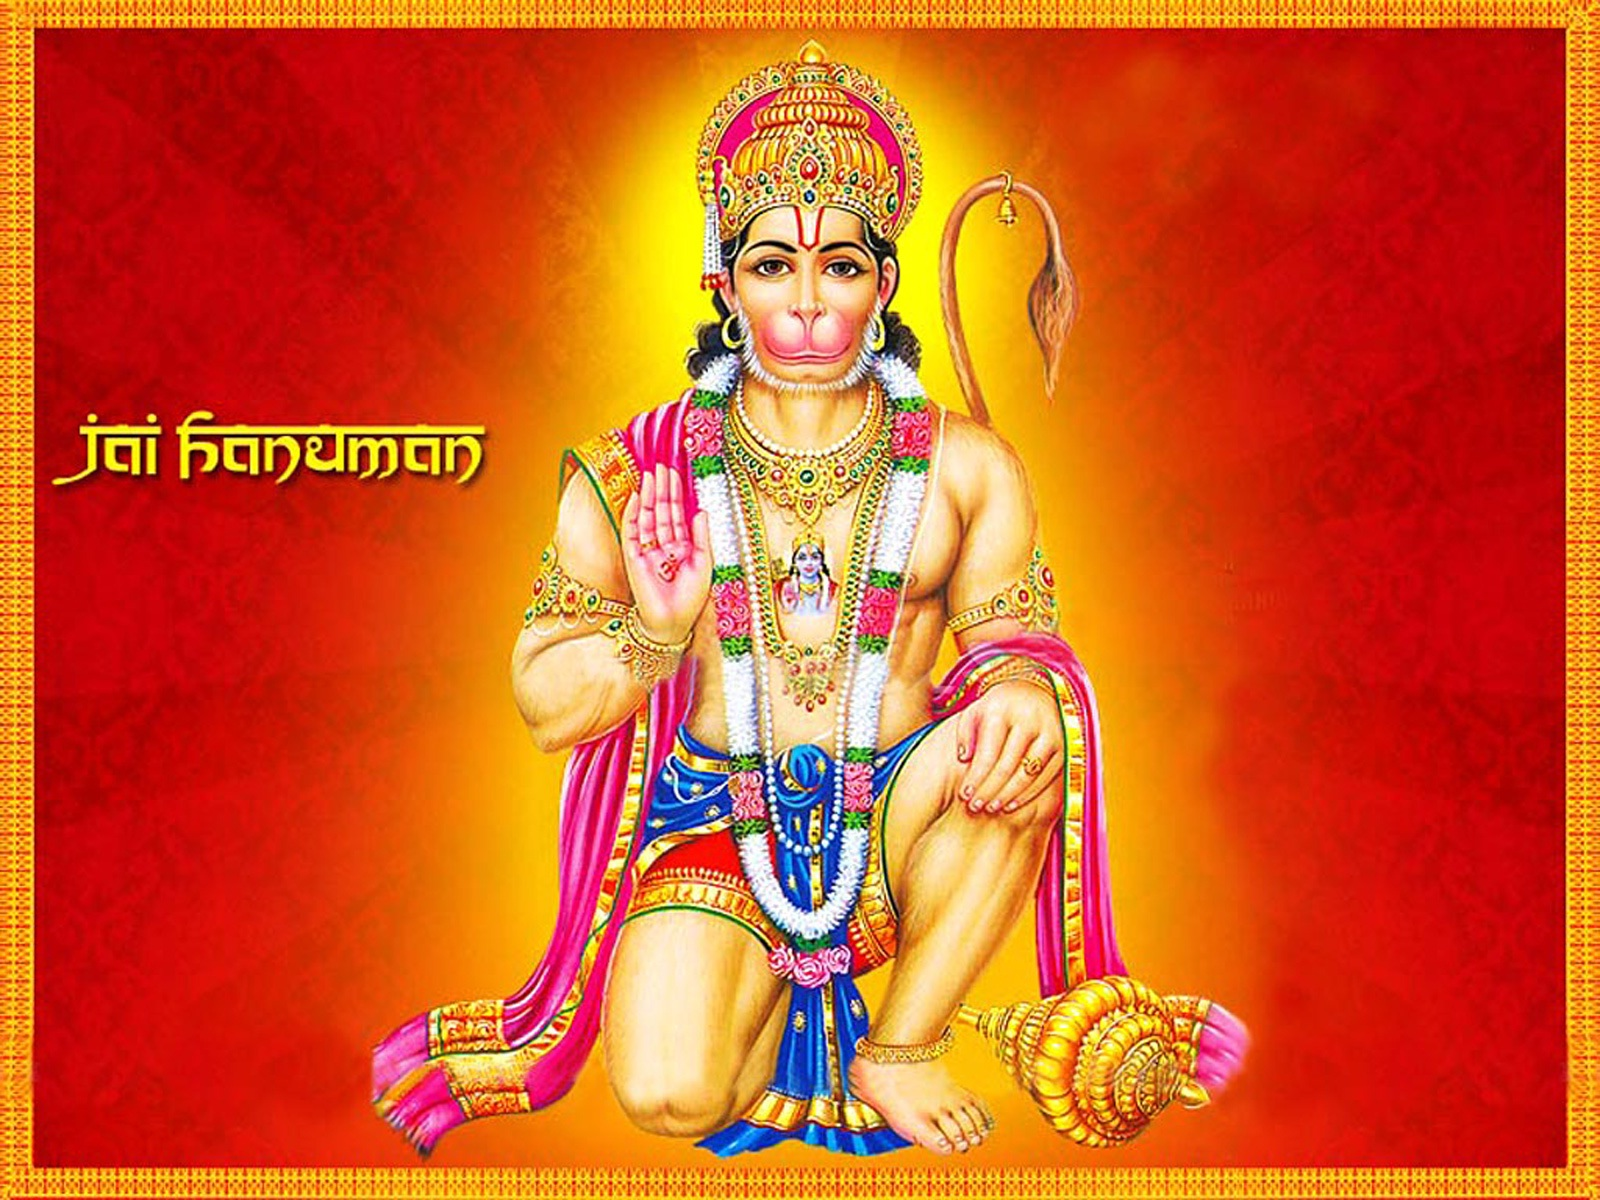 Lord Hanuman HD wallpaper for download